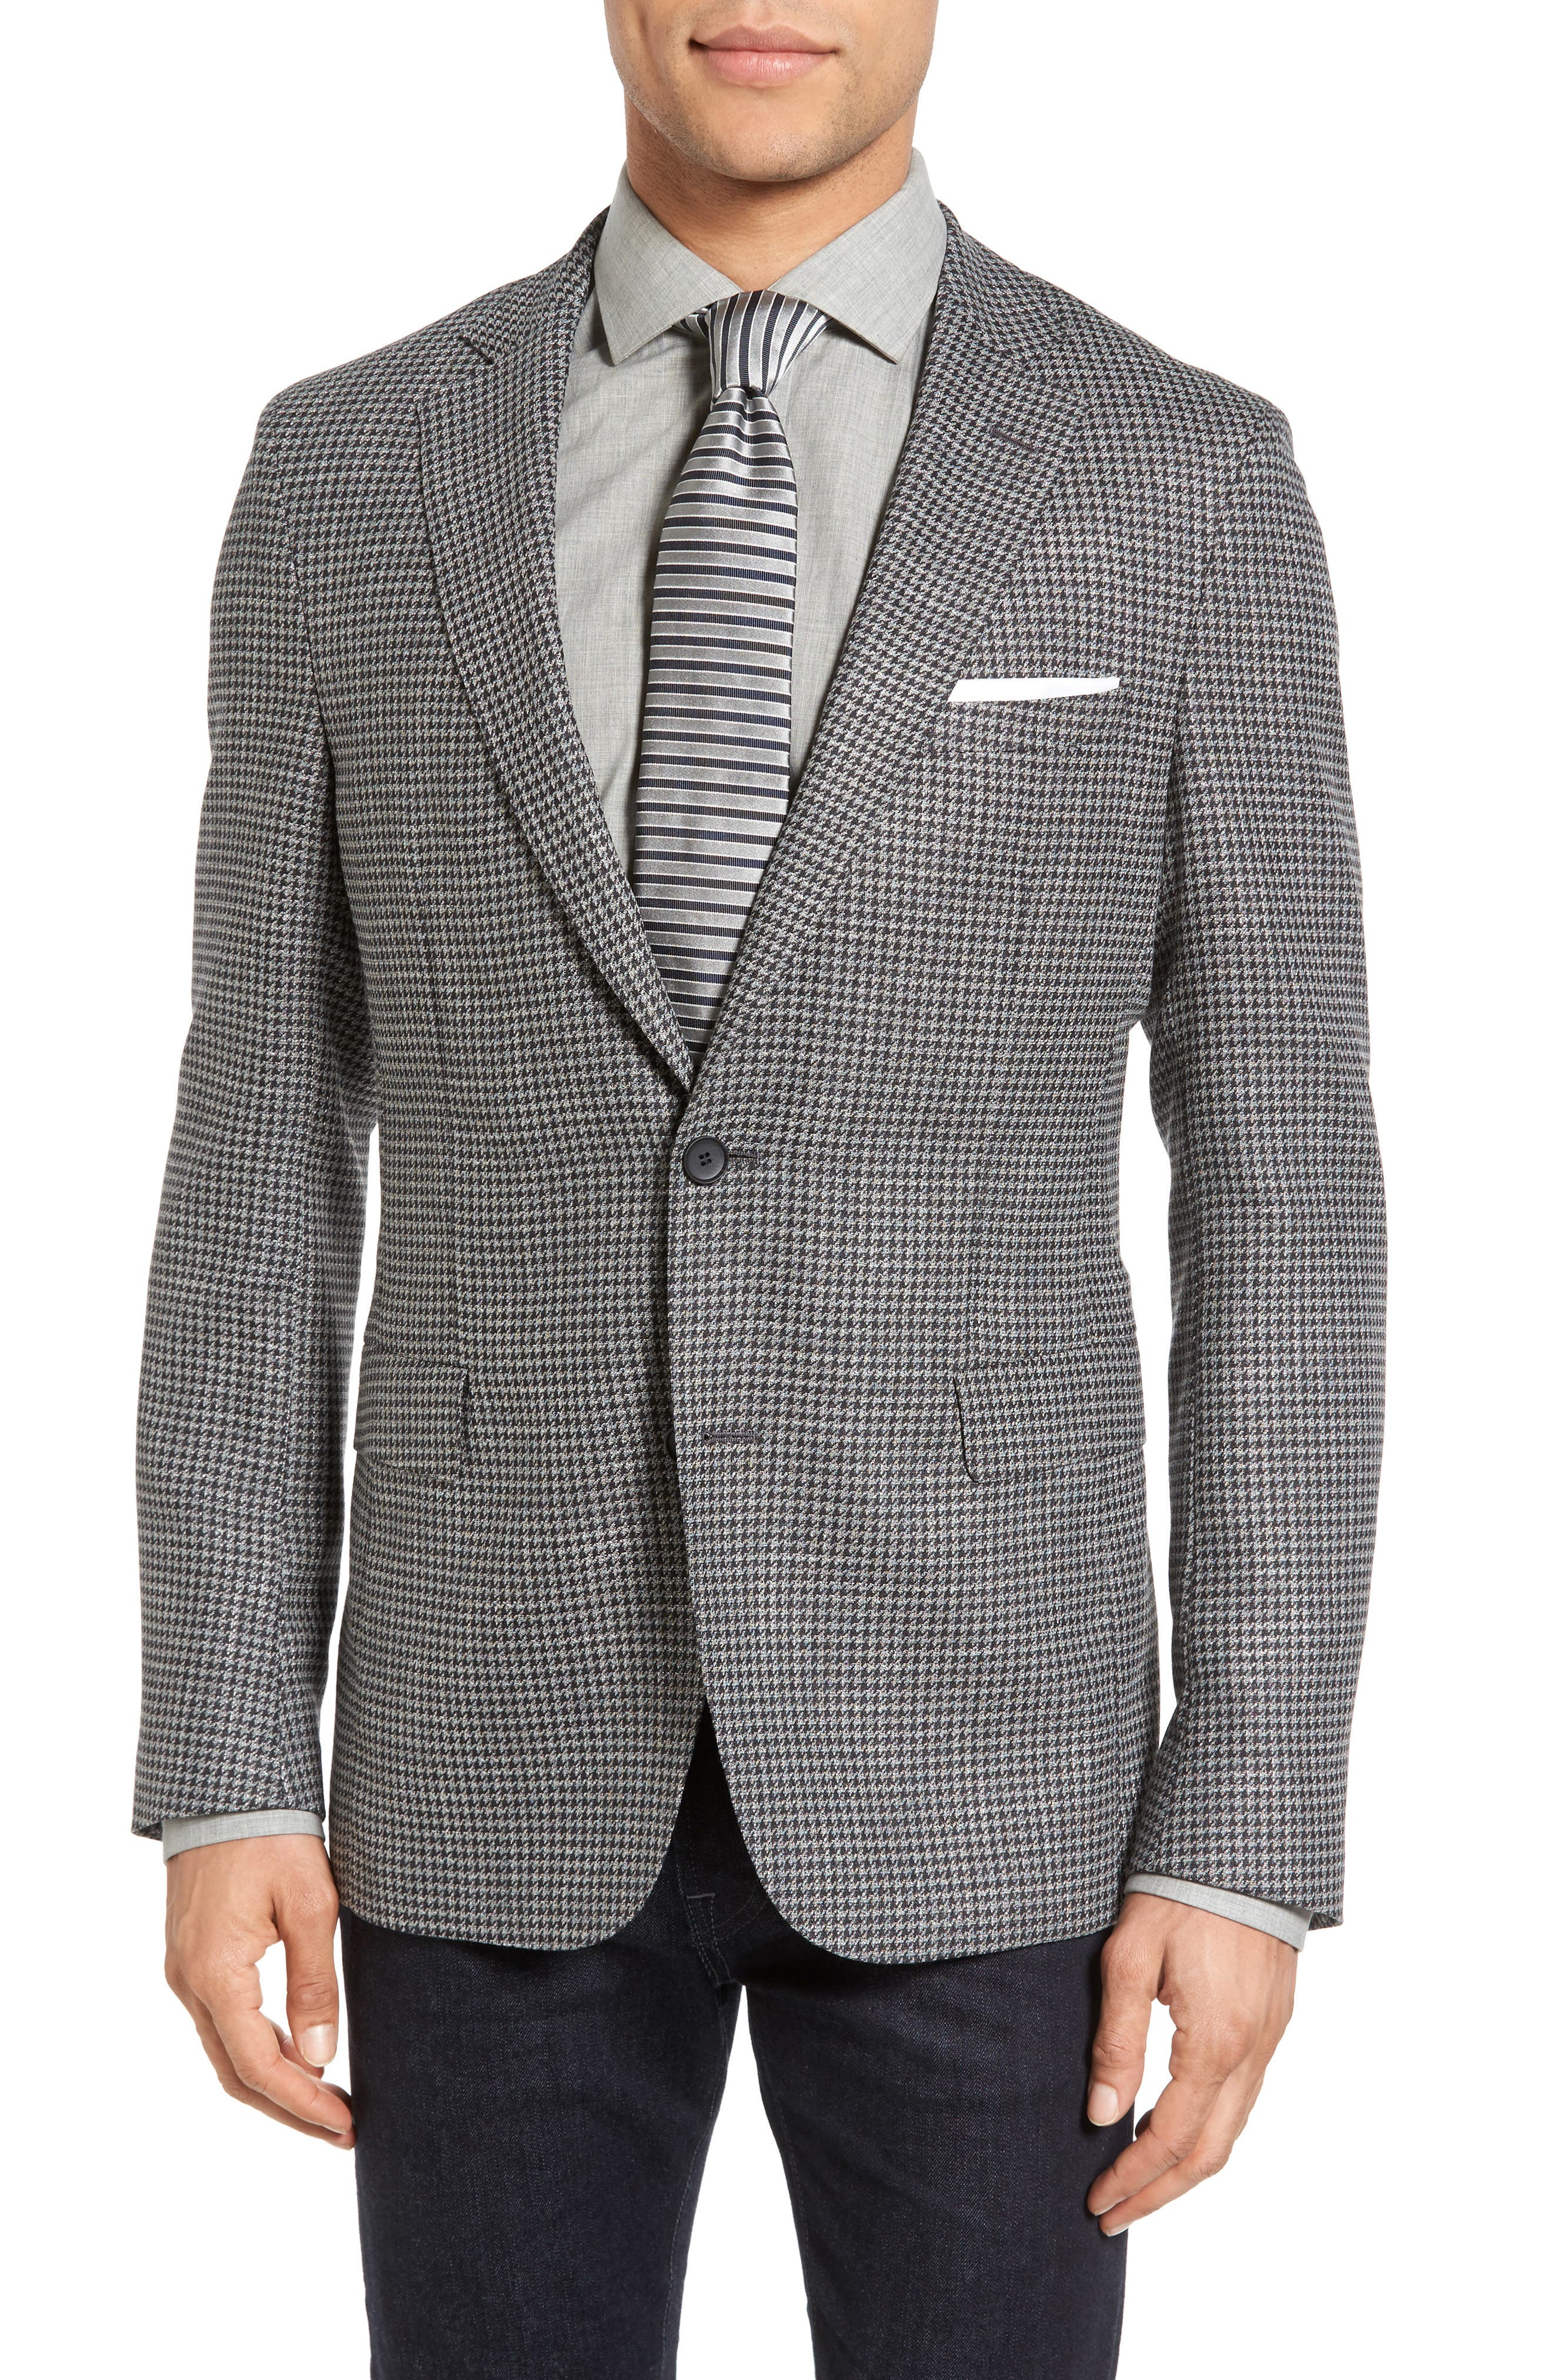 Alternate Image 1 Selected - BOSS Roan Trim Fit Houndstooth Wool Blend Sport Coat